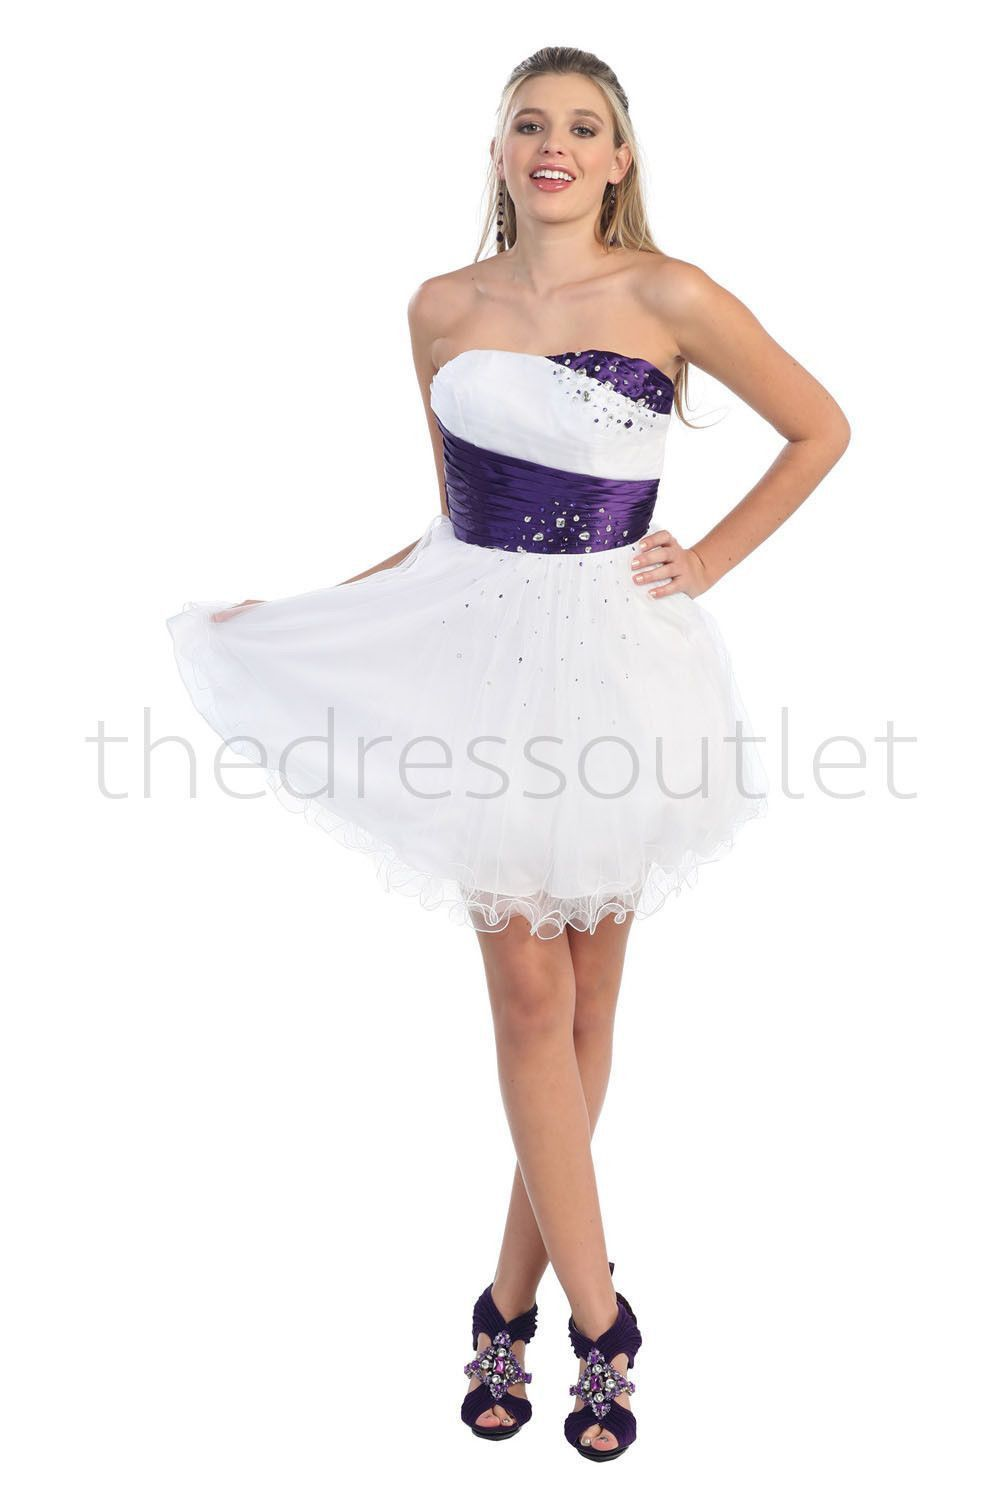 Thedressoutlet homecoming short dress prom cocktail products